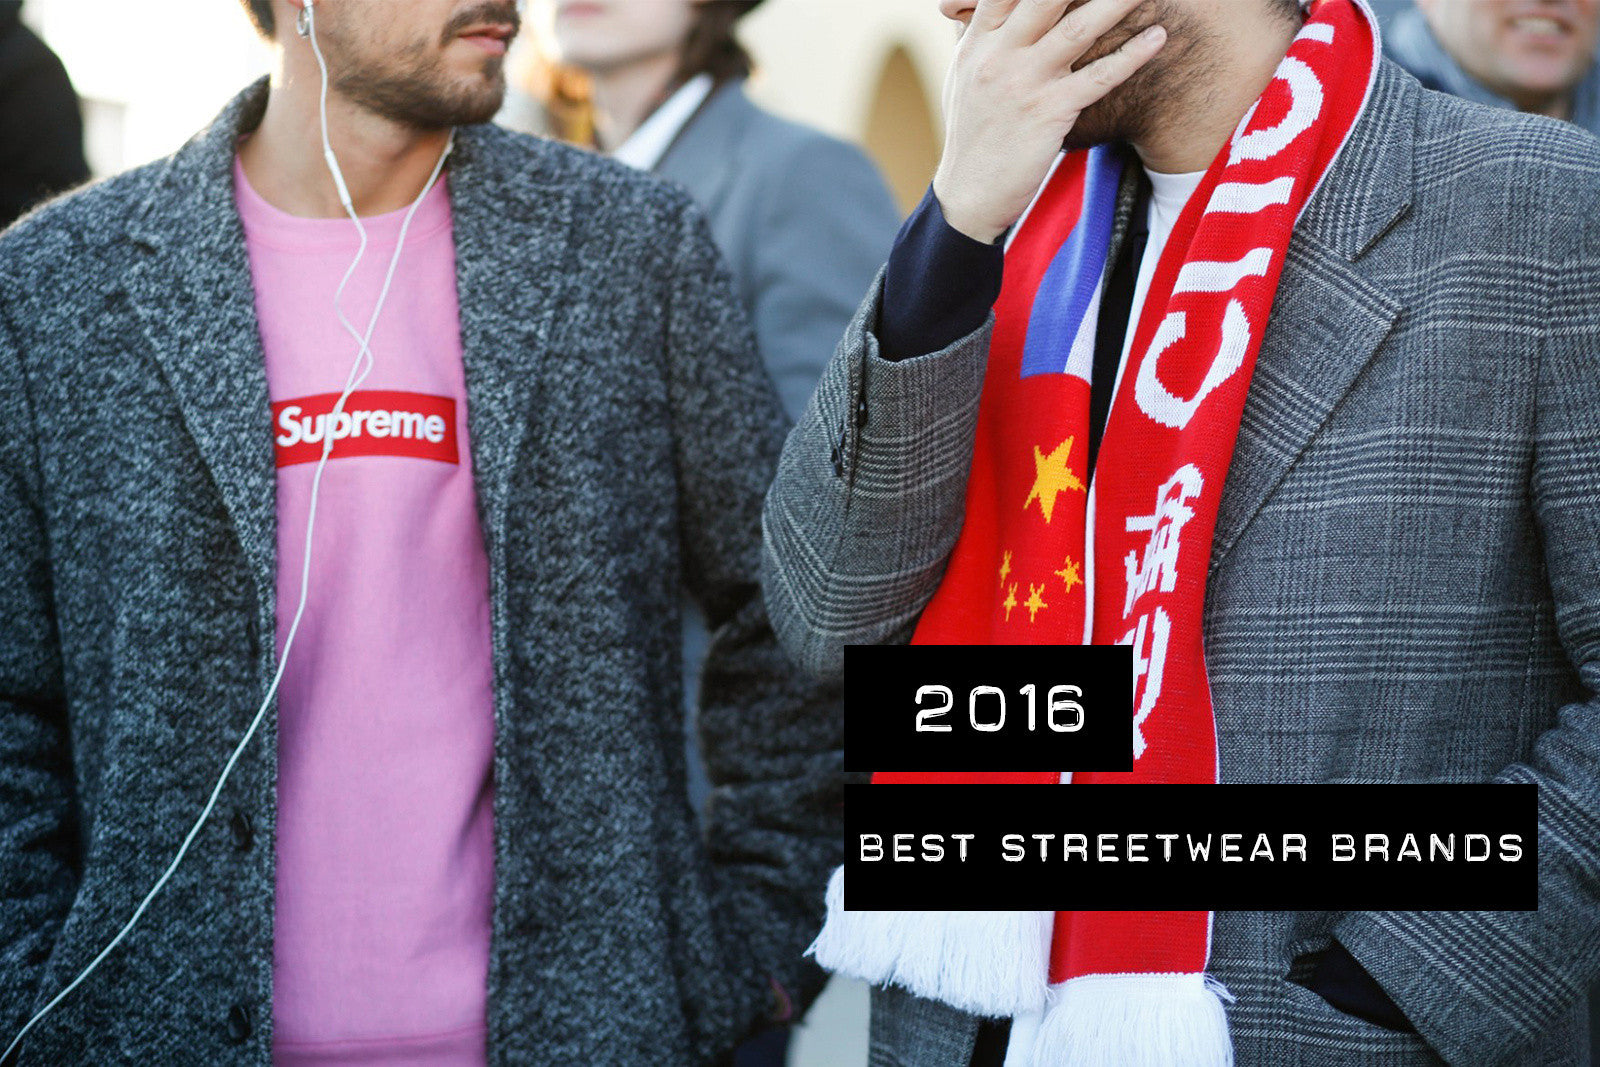 The Best Streetwear Brands of 2016